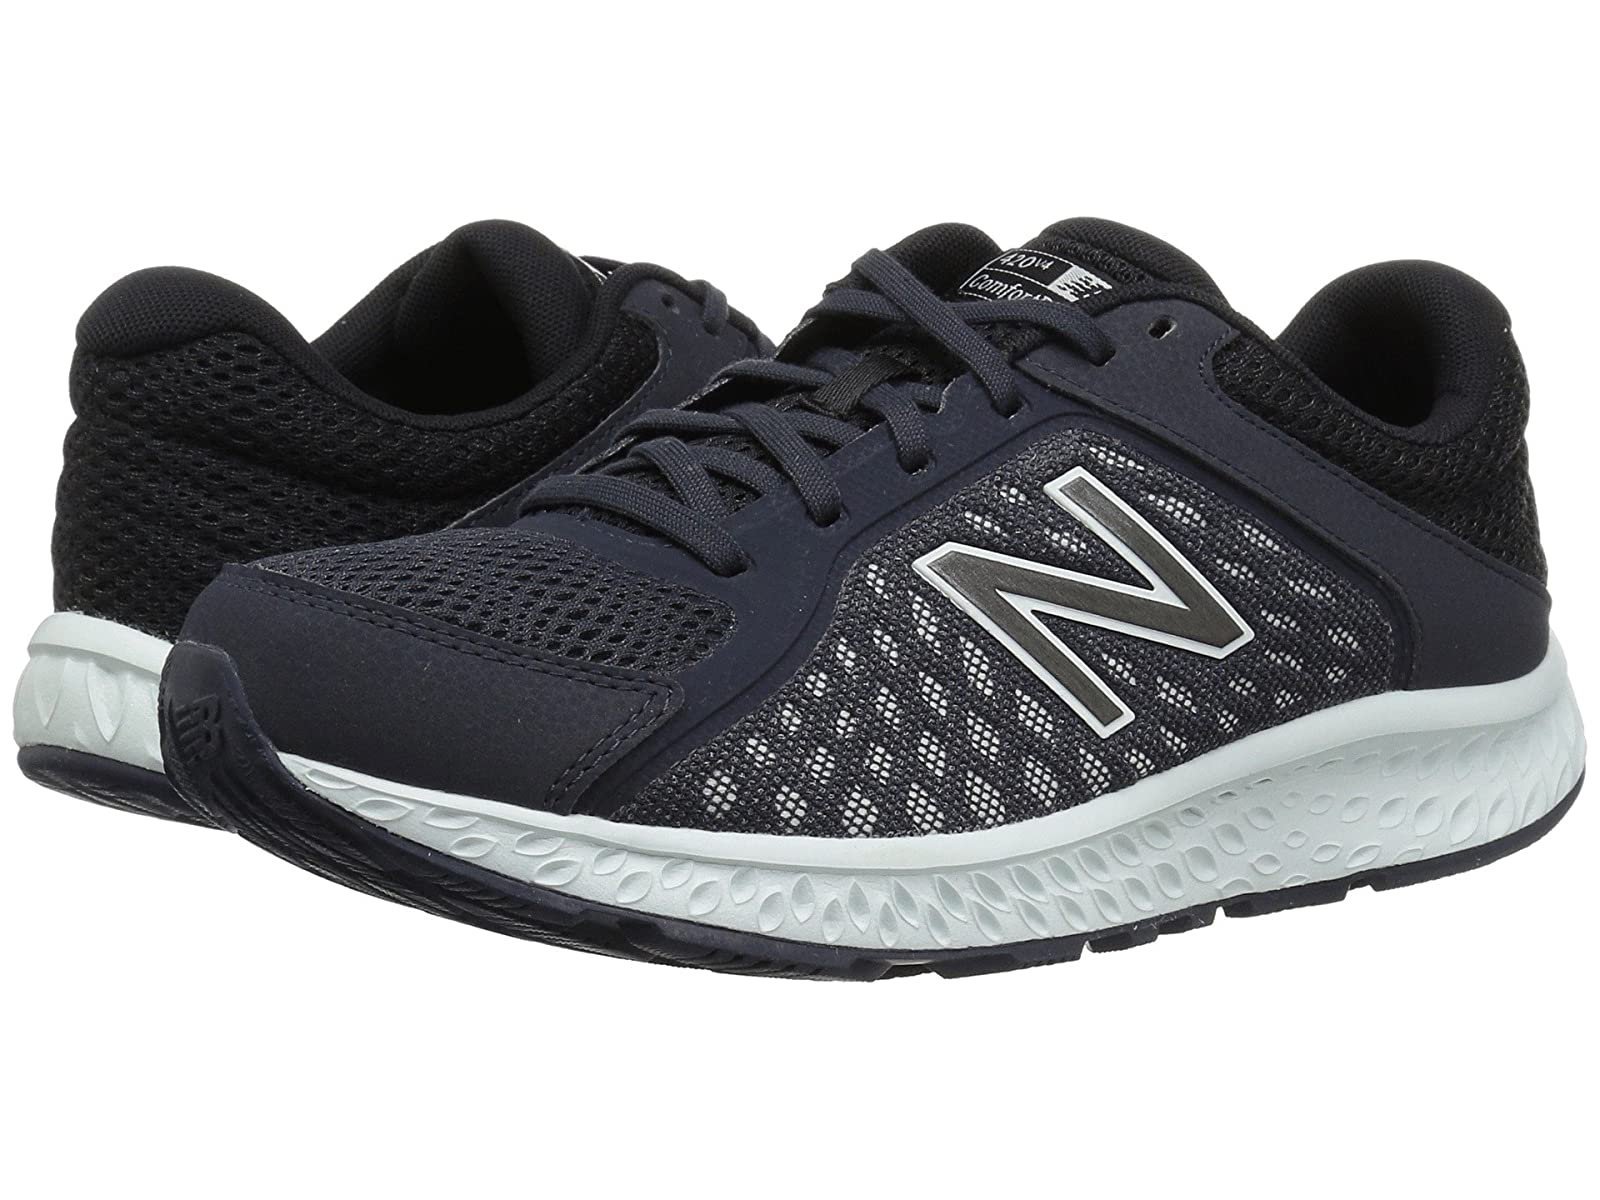 New Balance 420v4Atmospheric grades have affordable shoes